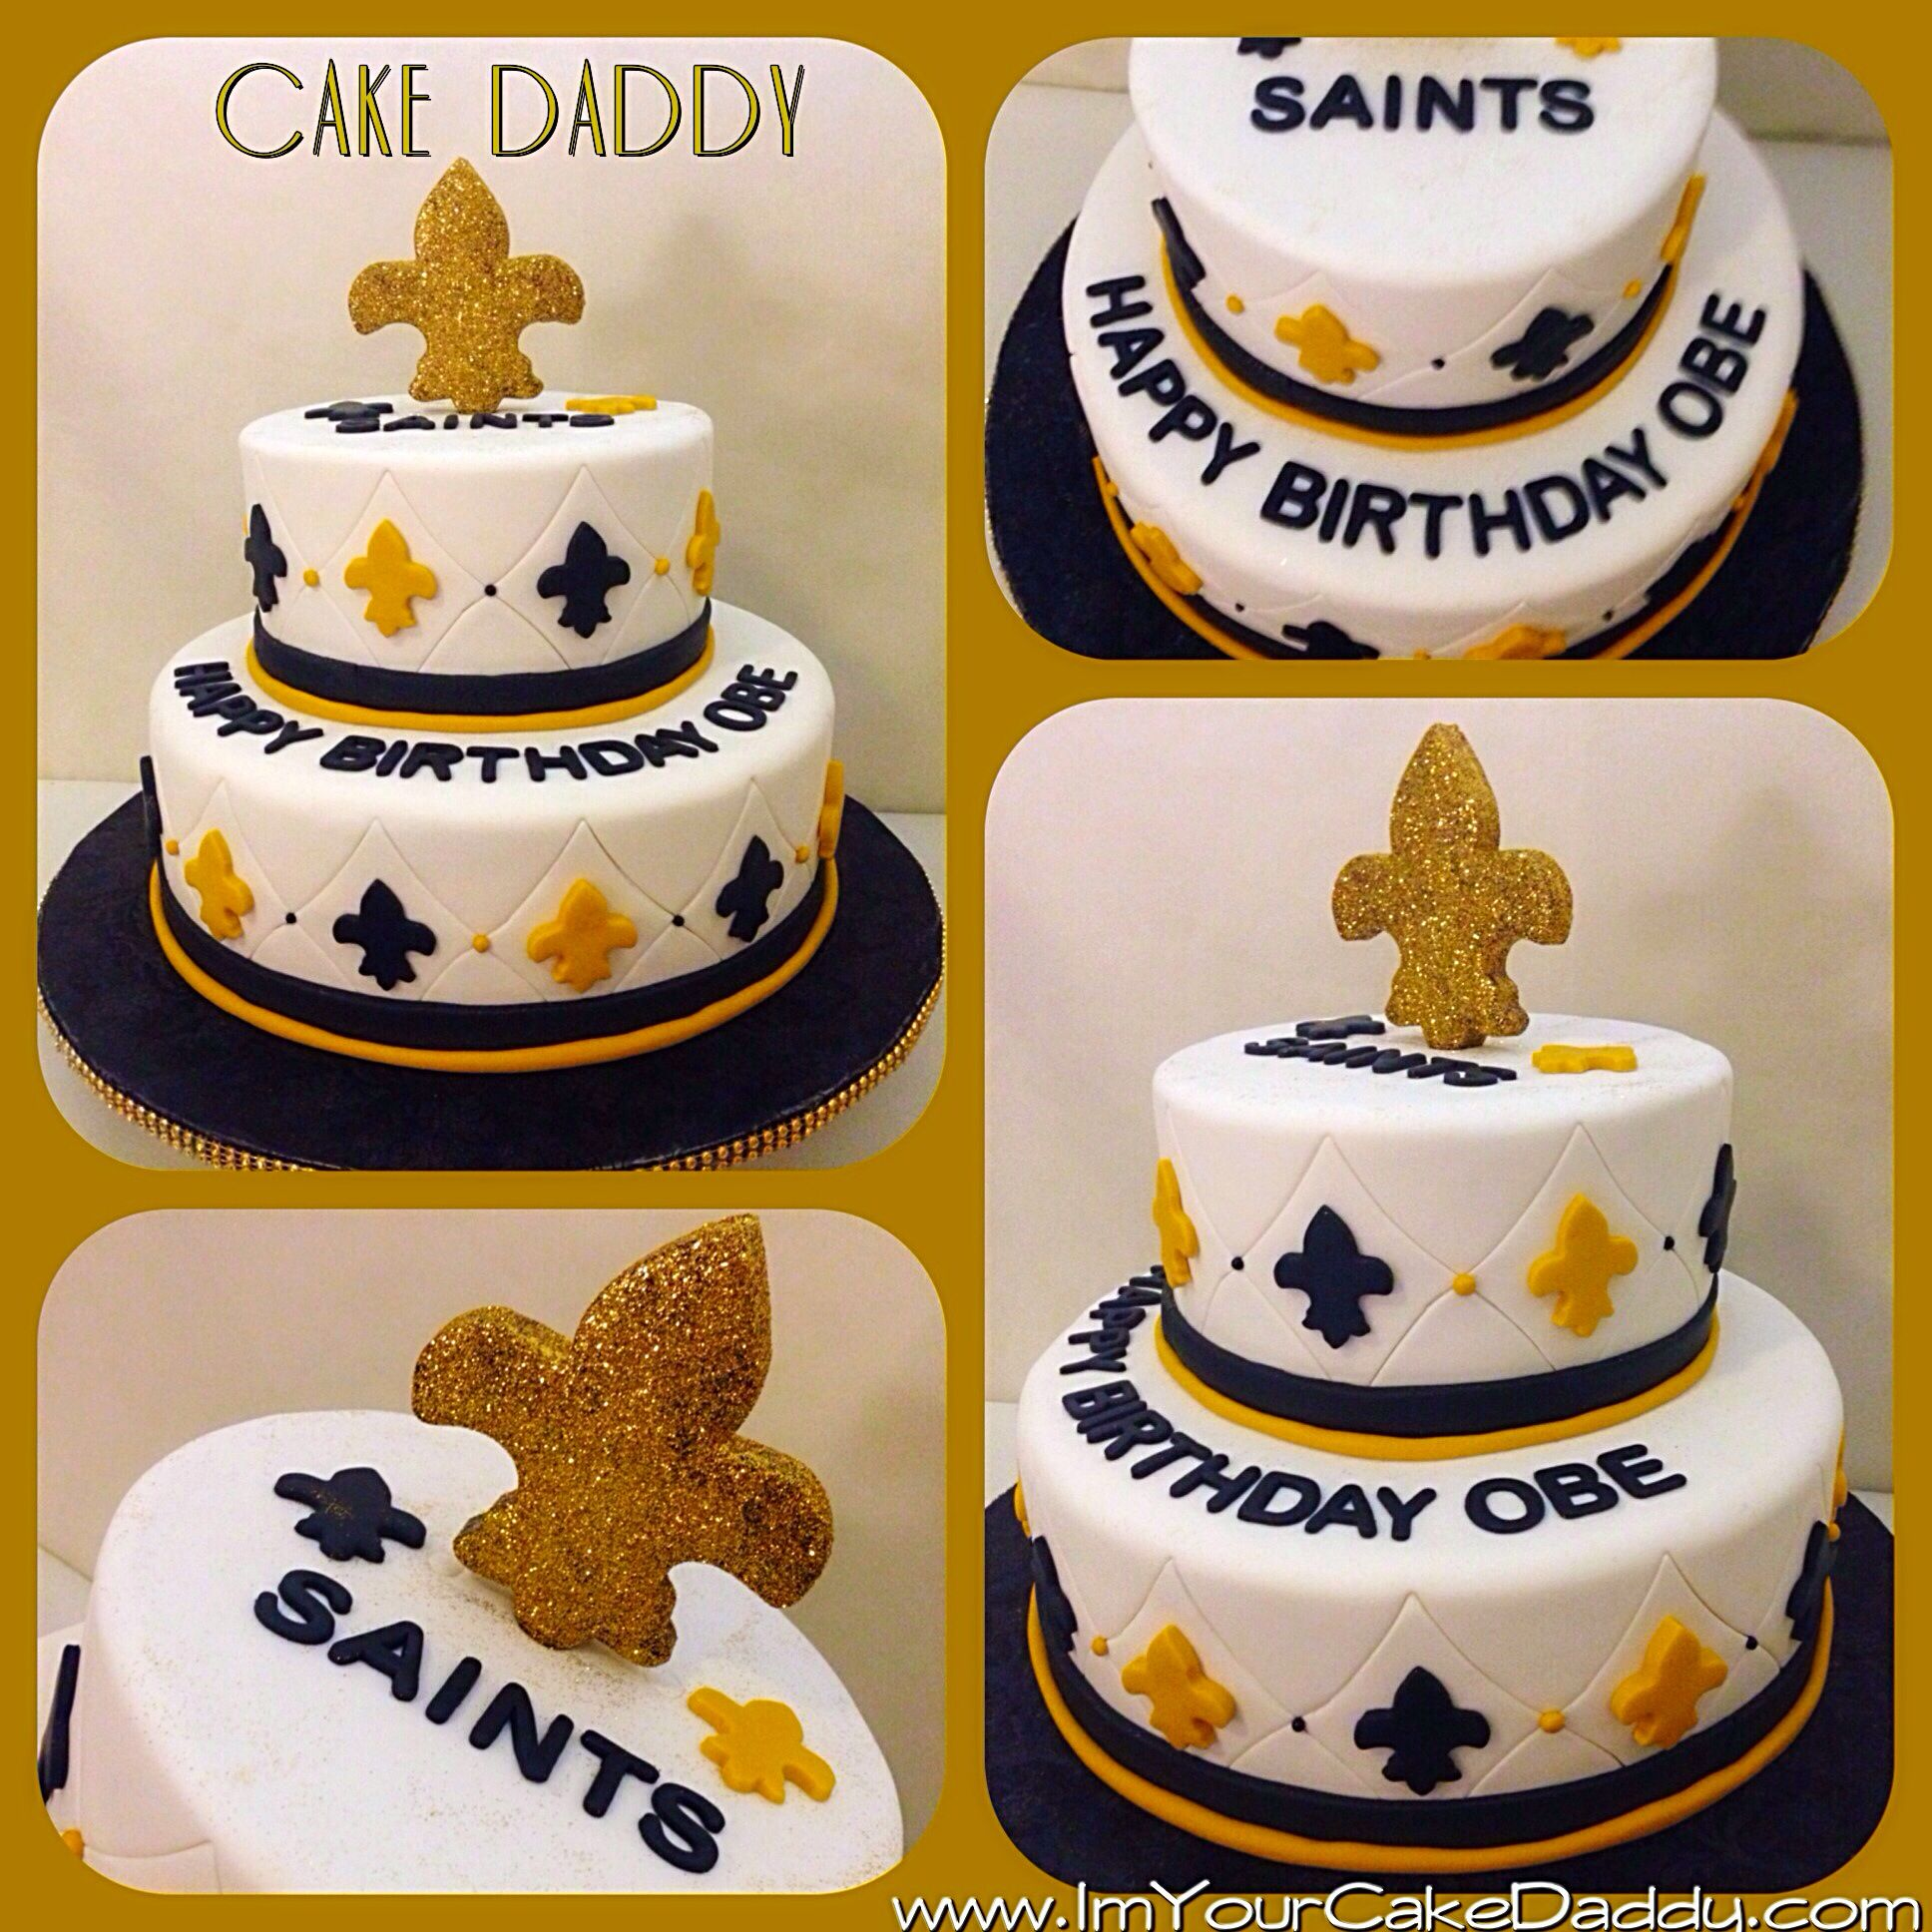 New Orleans Saints themed birthday cake Custom Cakes by Cake